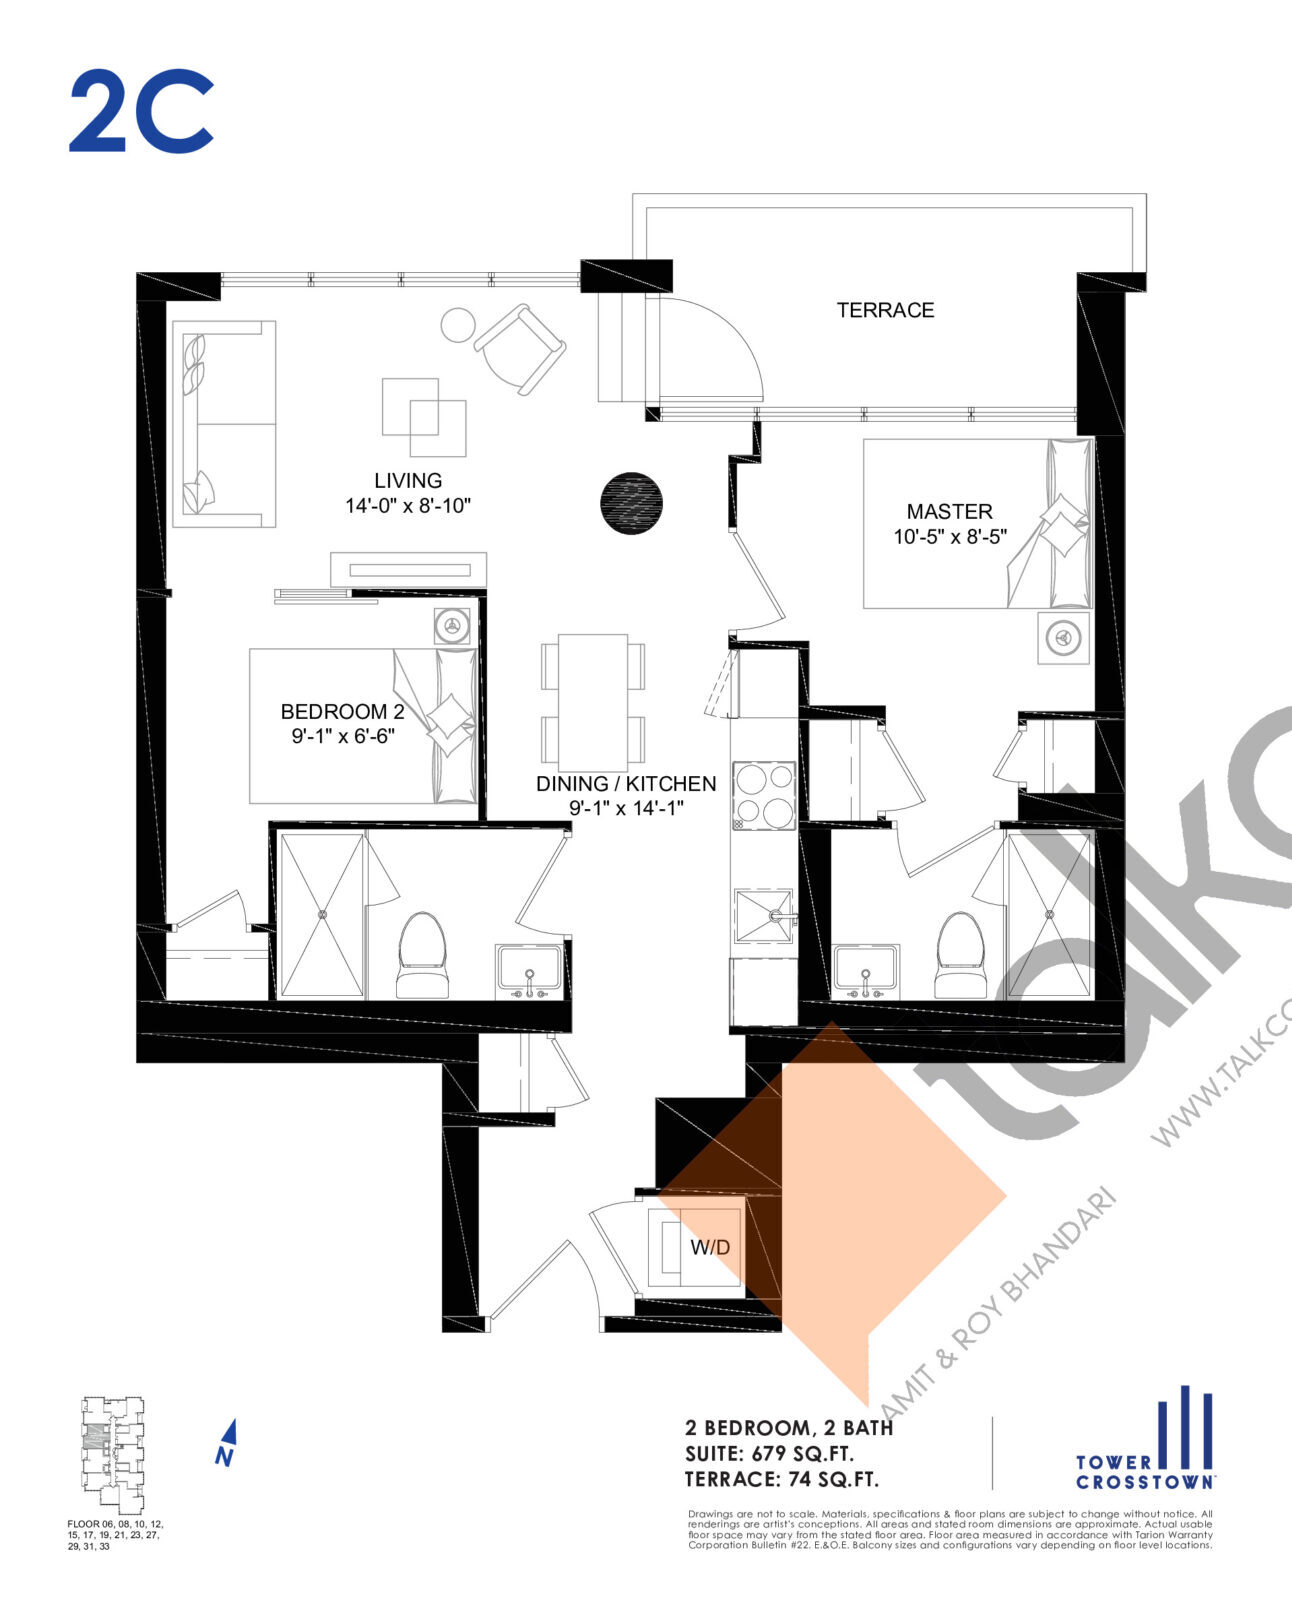 2C Floor Plan at Crosstown Tower 3 Condos - 679 sq.ft